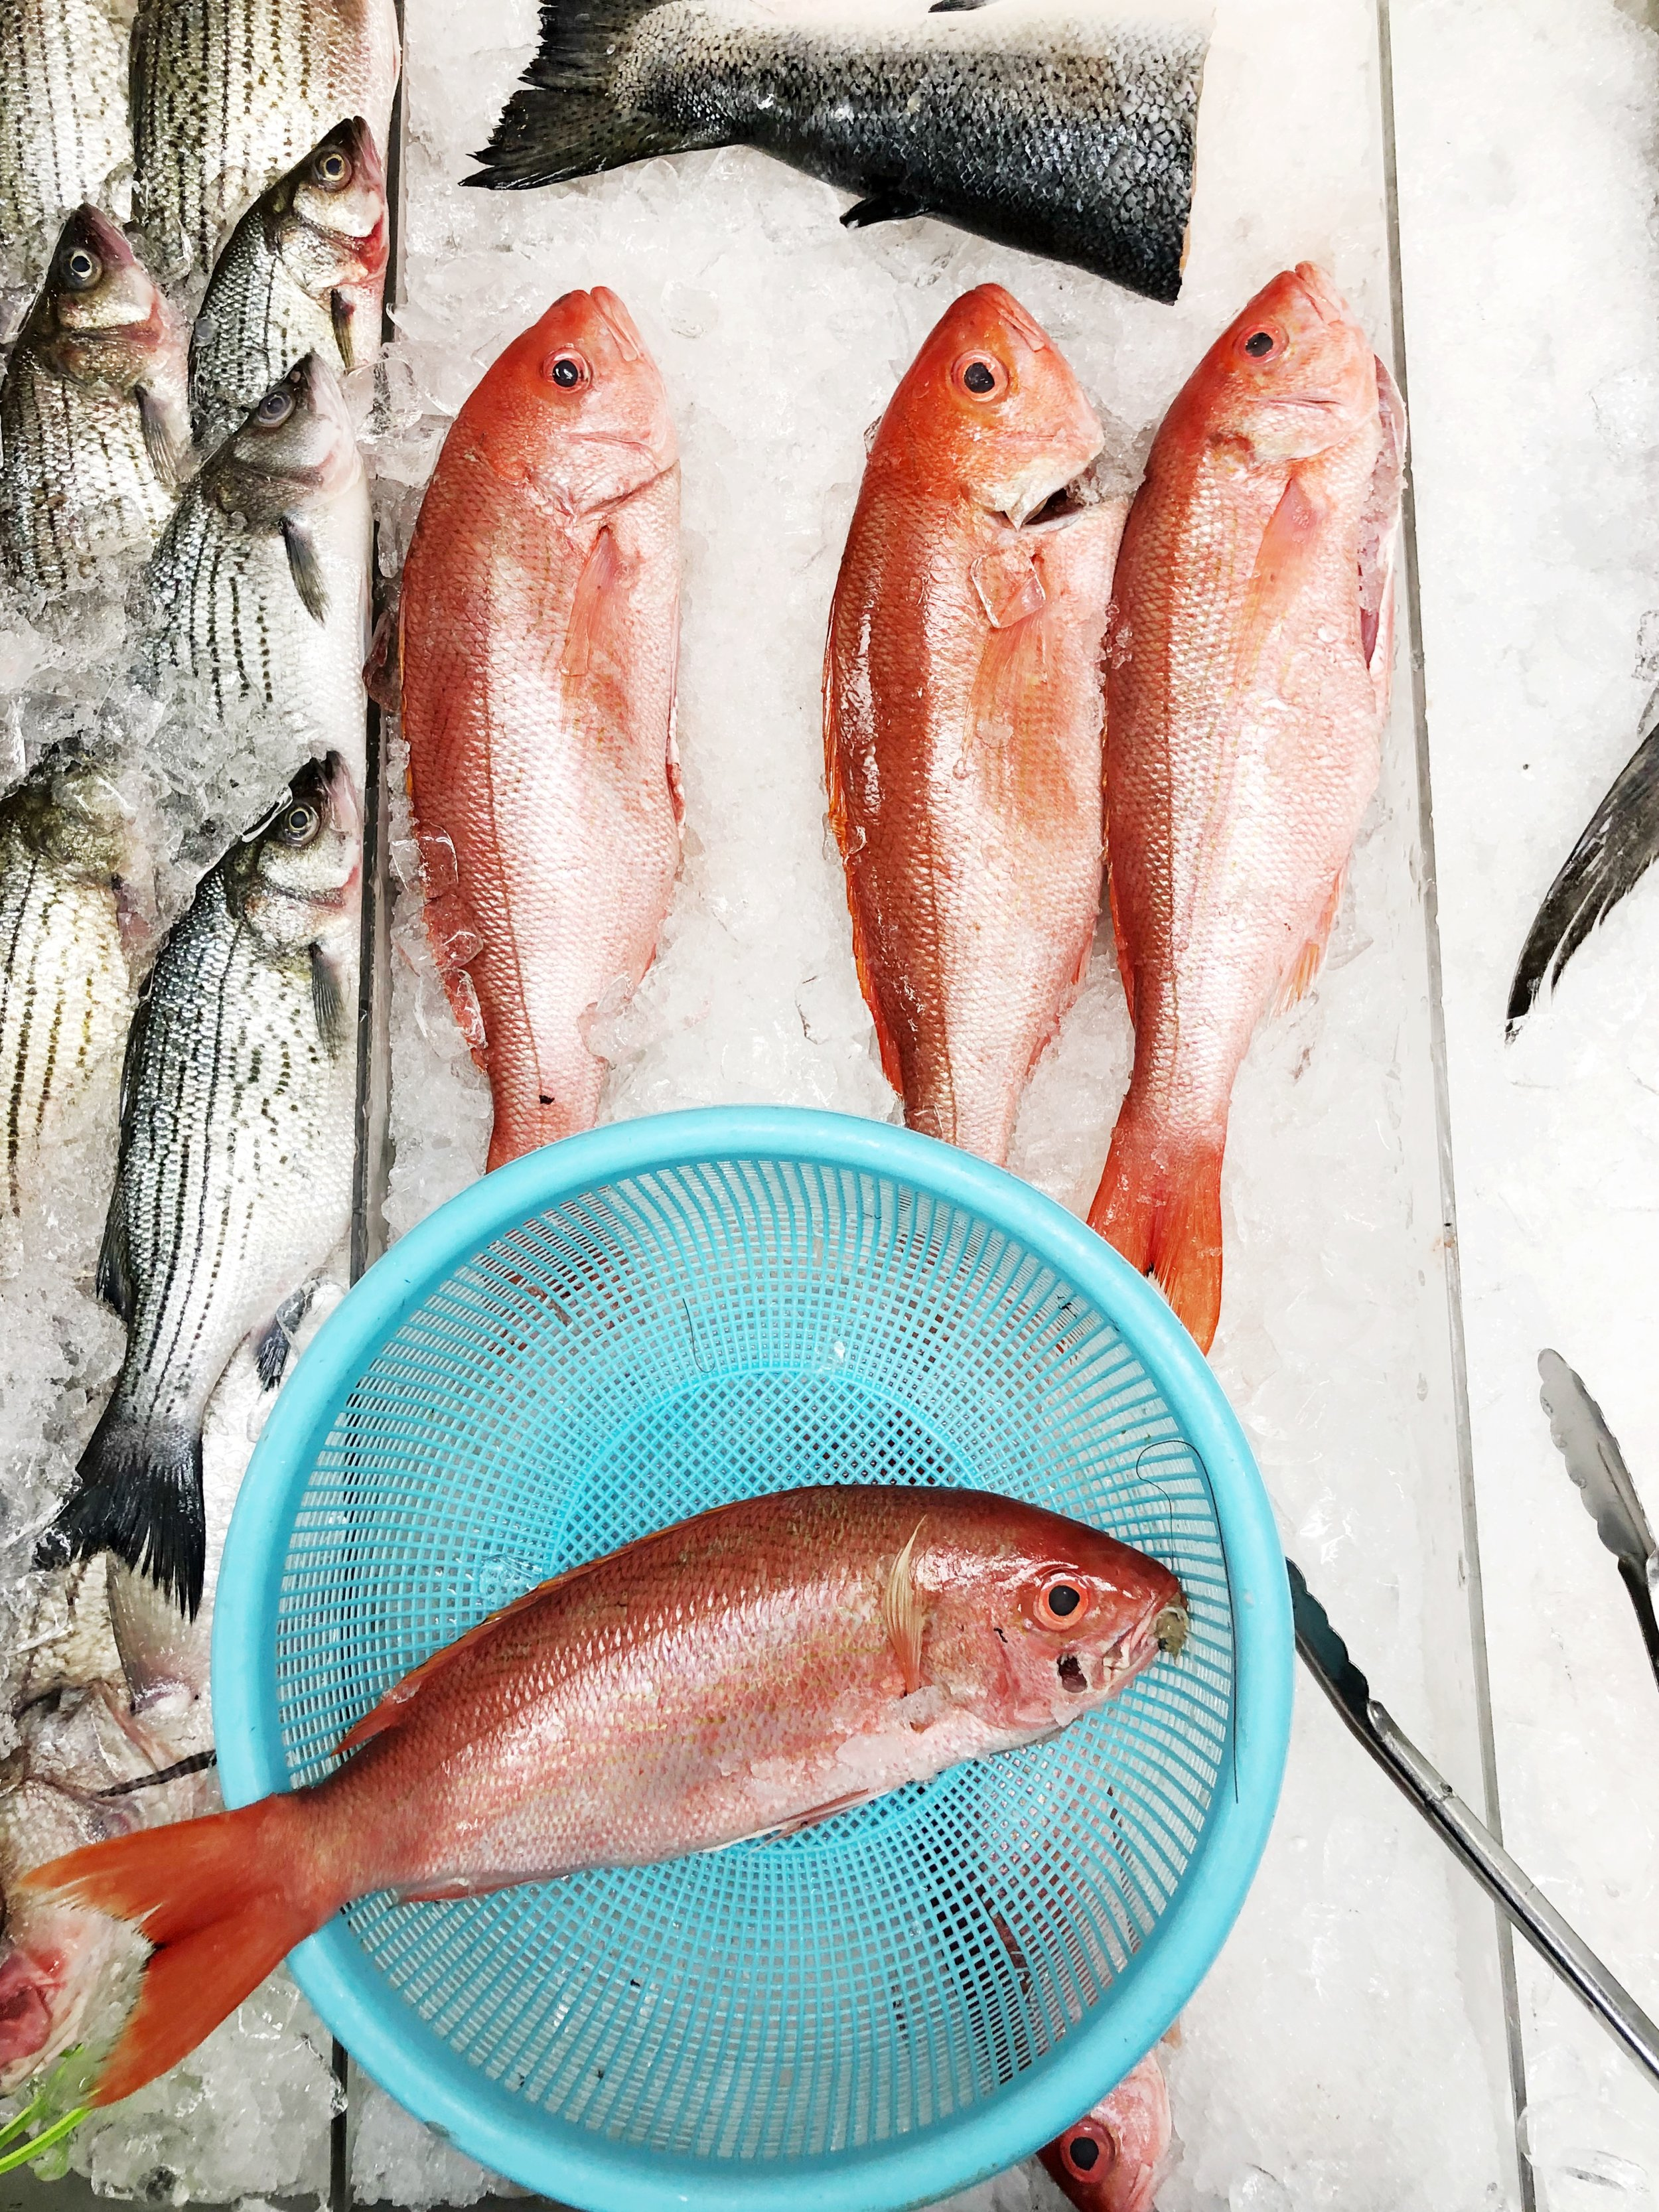 inner-harbor-seafood-plaza-midwood-charlotte-nc-red-snapper